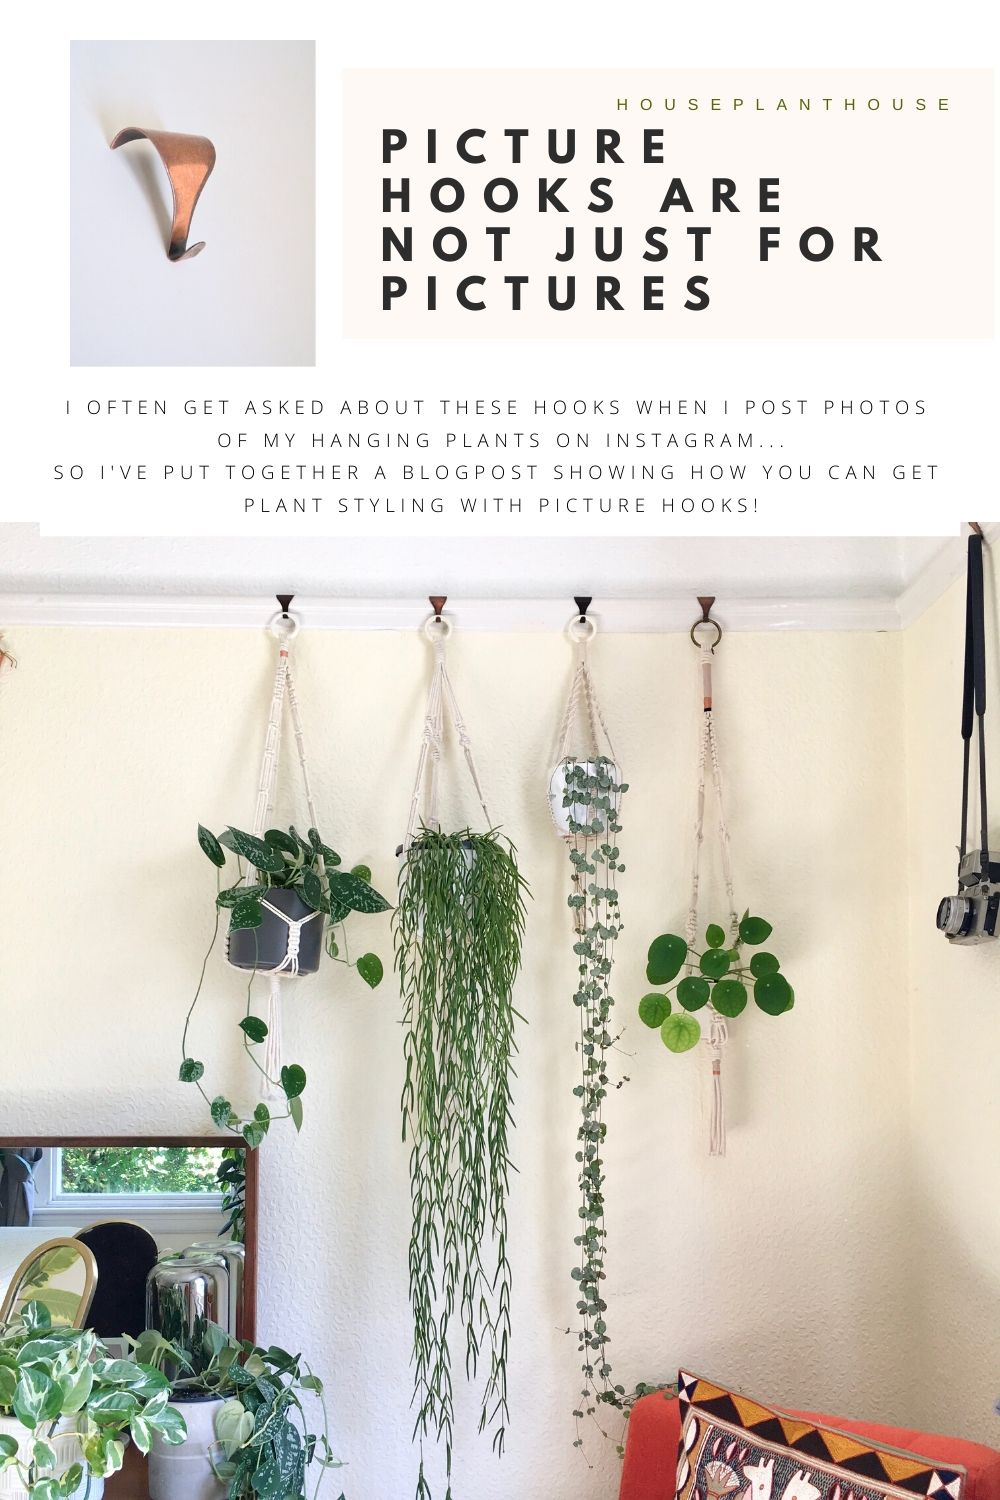 PICTURE HOOKS ARE NOT JUST FOR PICTURES